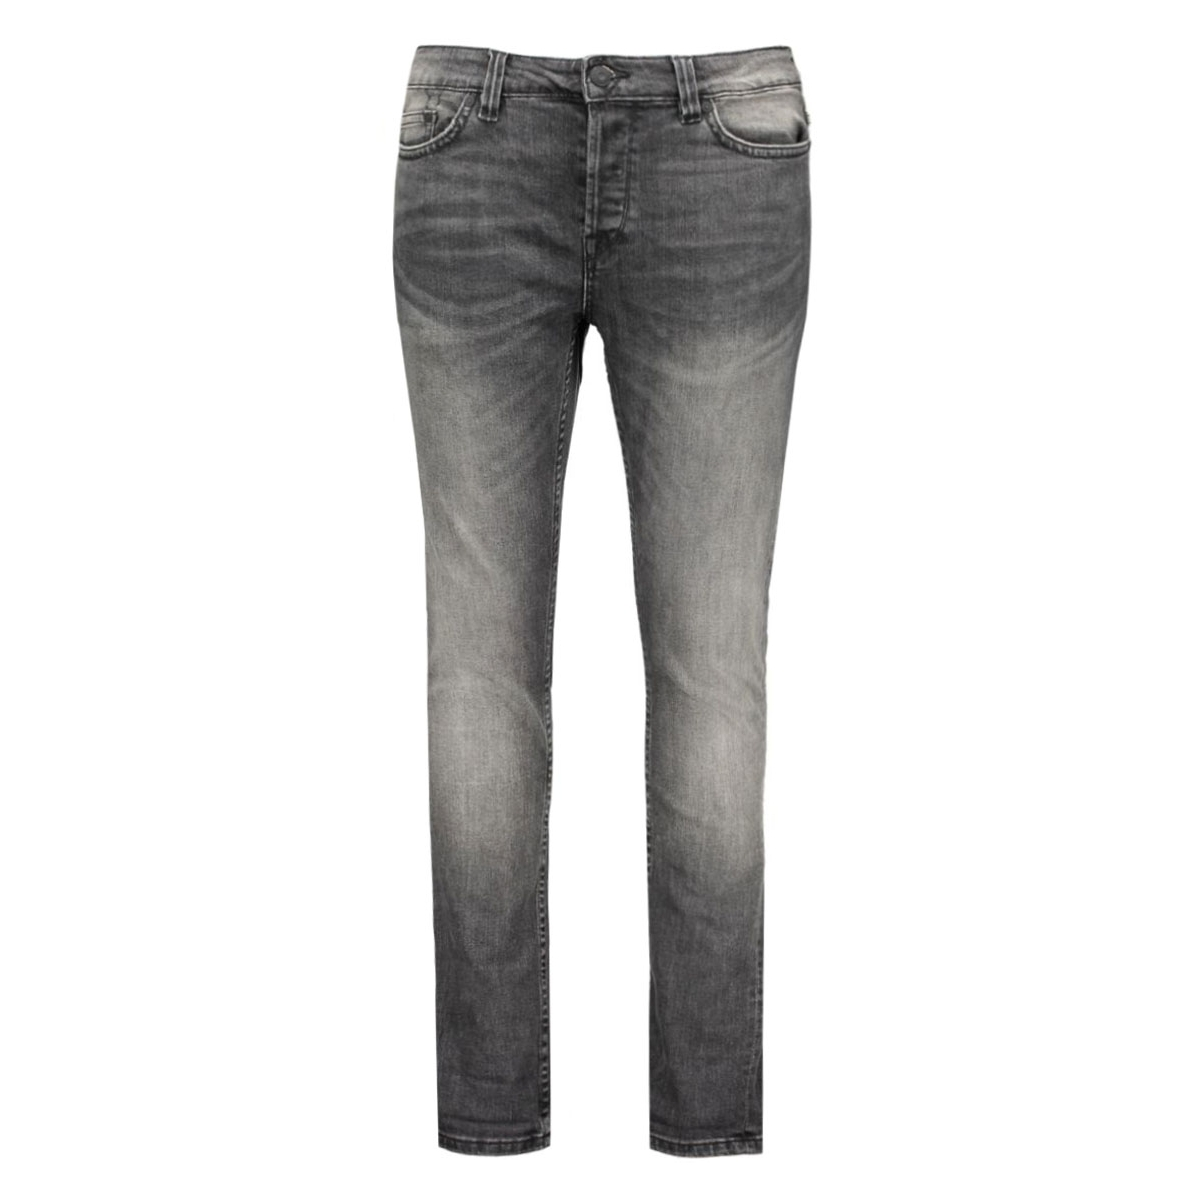 onsloom dark grey dnm 3951 pa noos 22003951 only & sons jeans dark grey denim